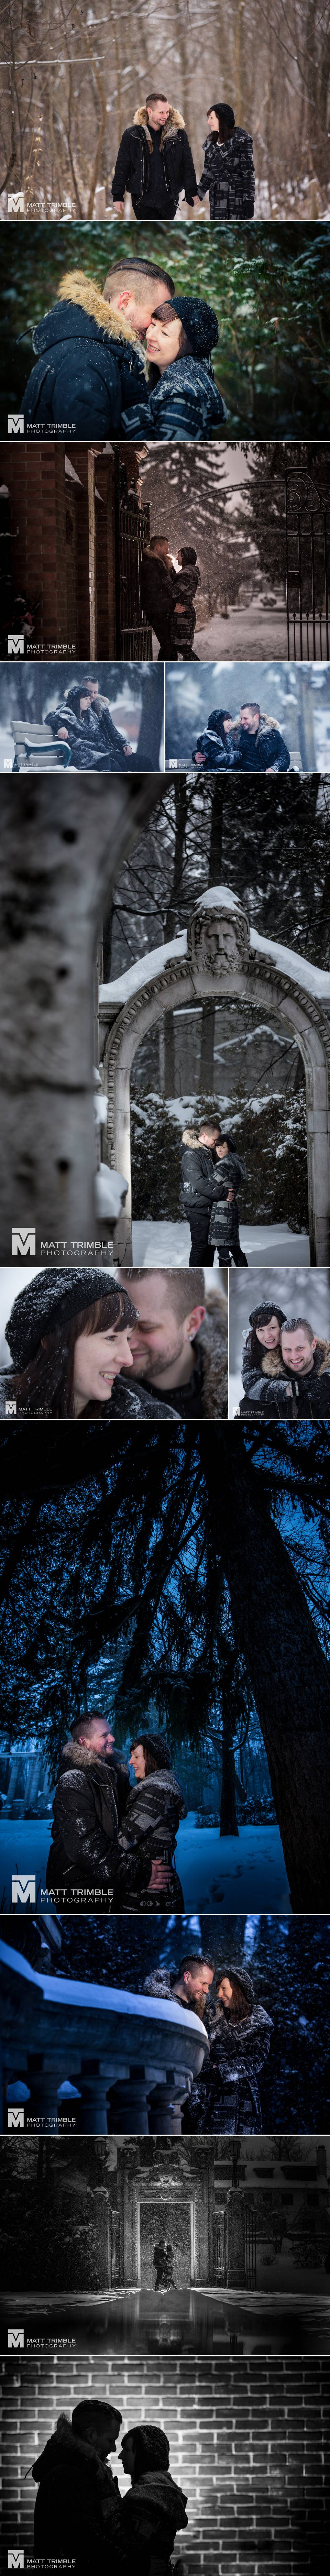 guild park toronto engagement photography